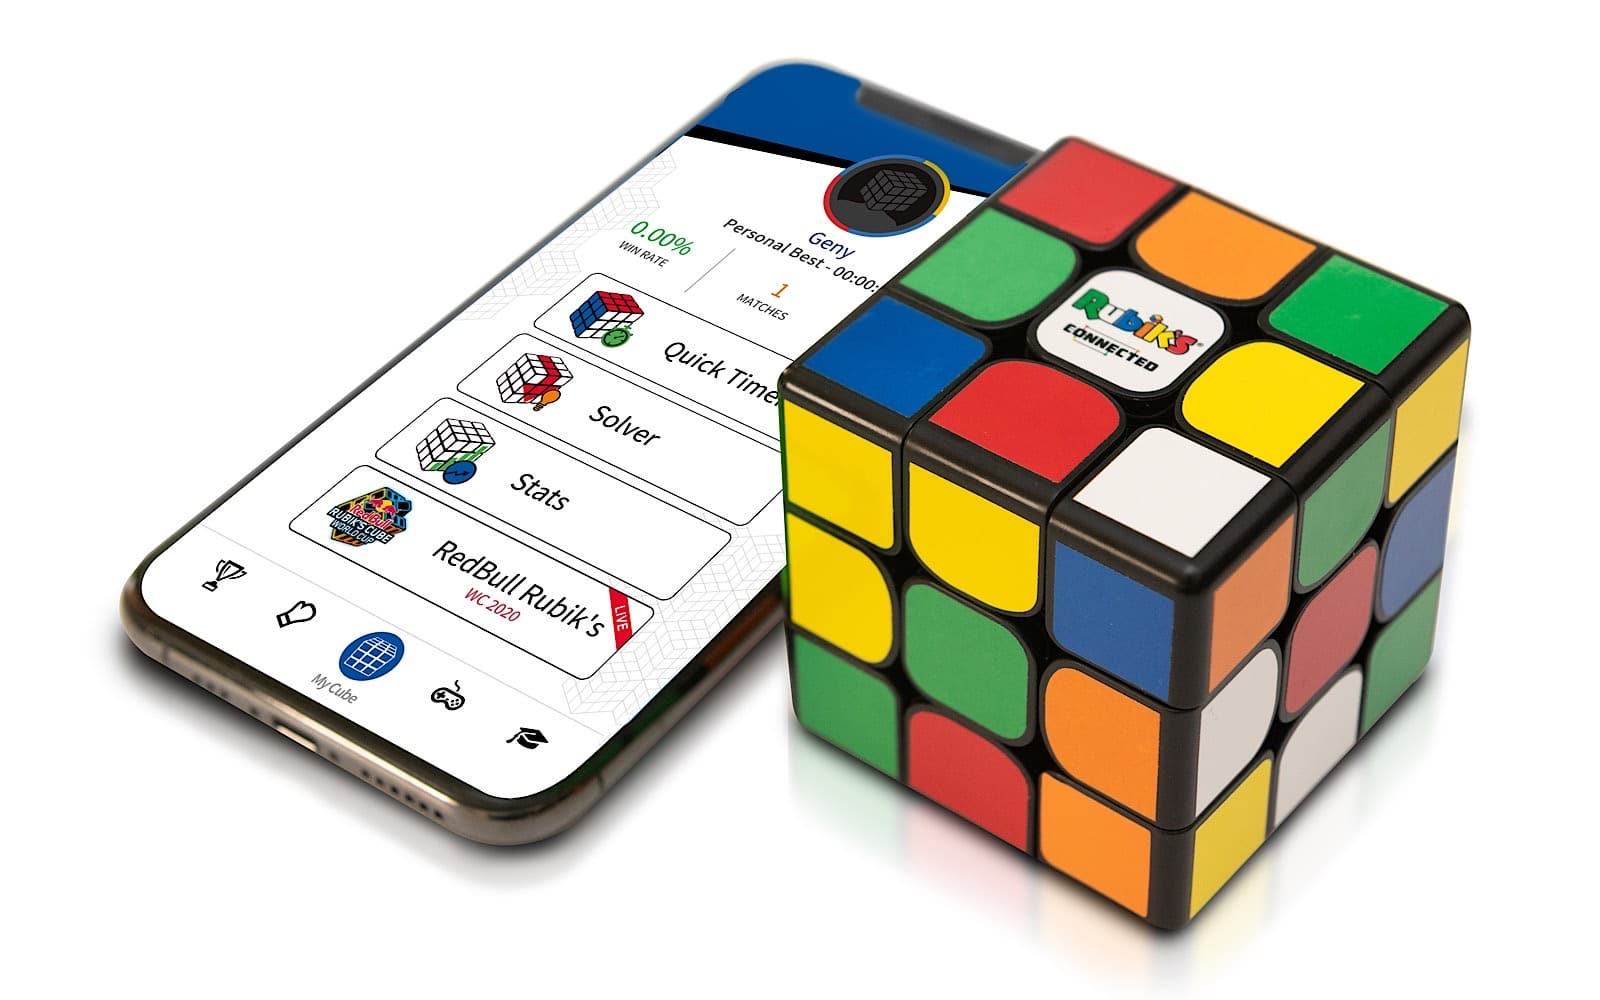 Rubik's Connected is an app-connected Rubik's Cube